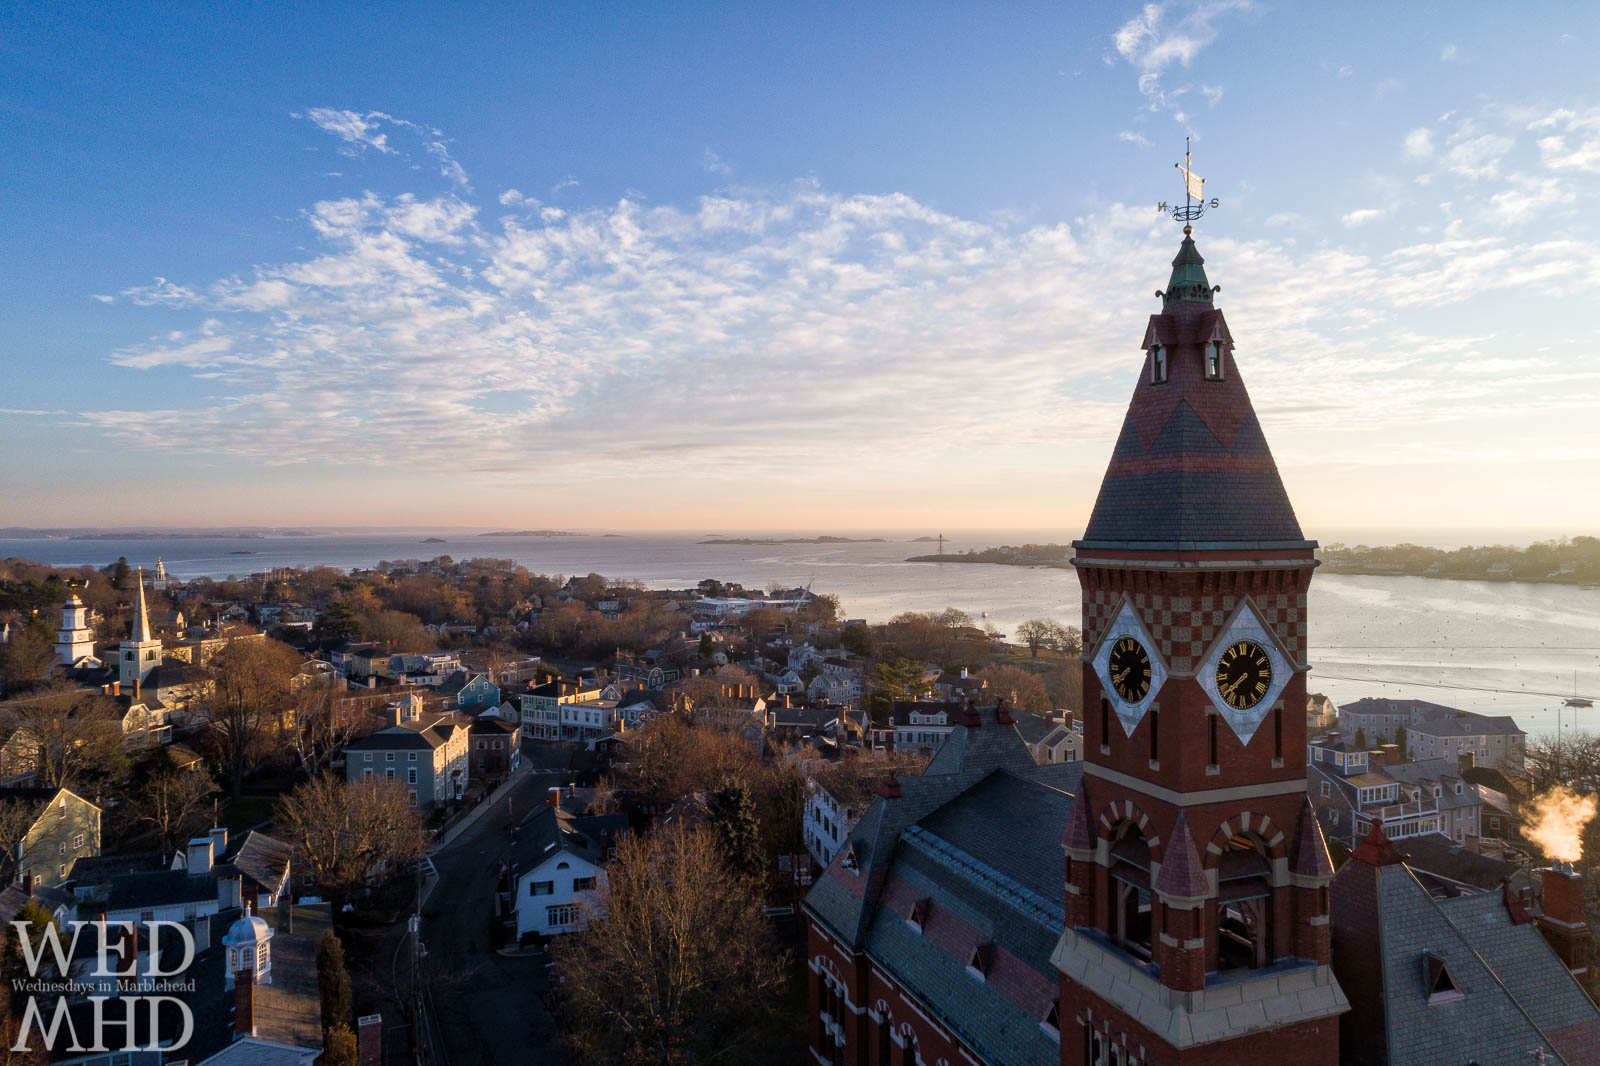 That moment when you realize a whole new world is suddenly at your fingertips - light dawns on Marblehead in one of my first aerial view of historic downtown